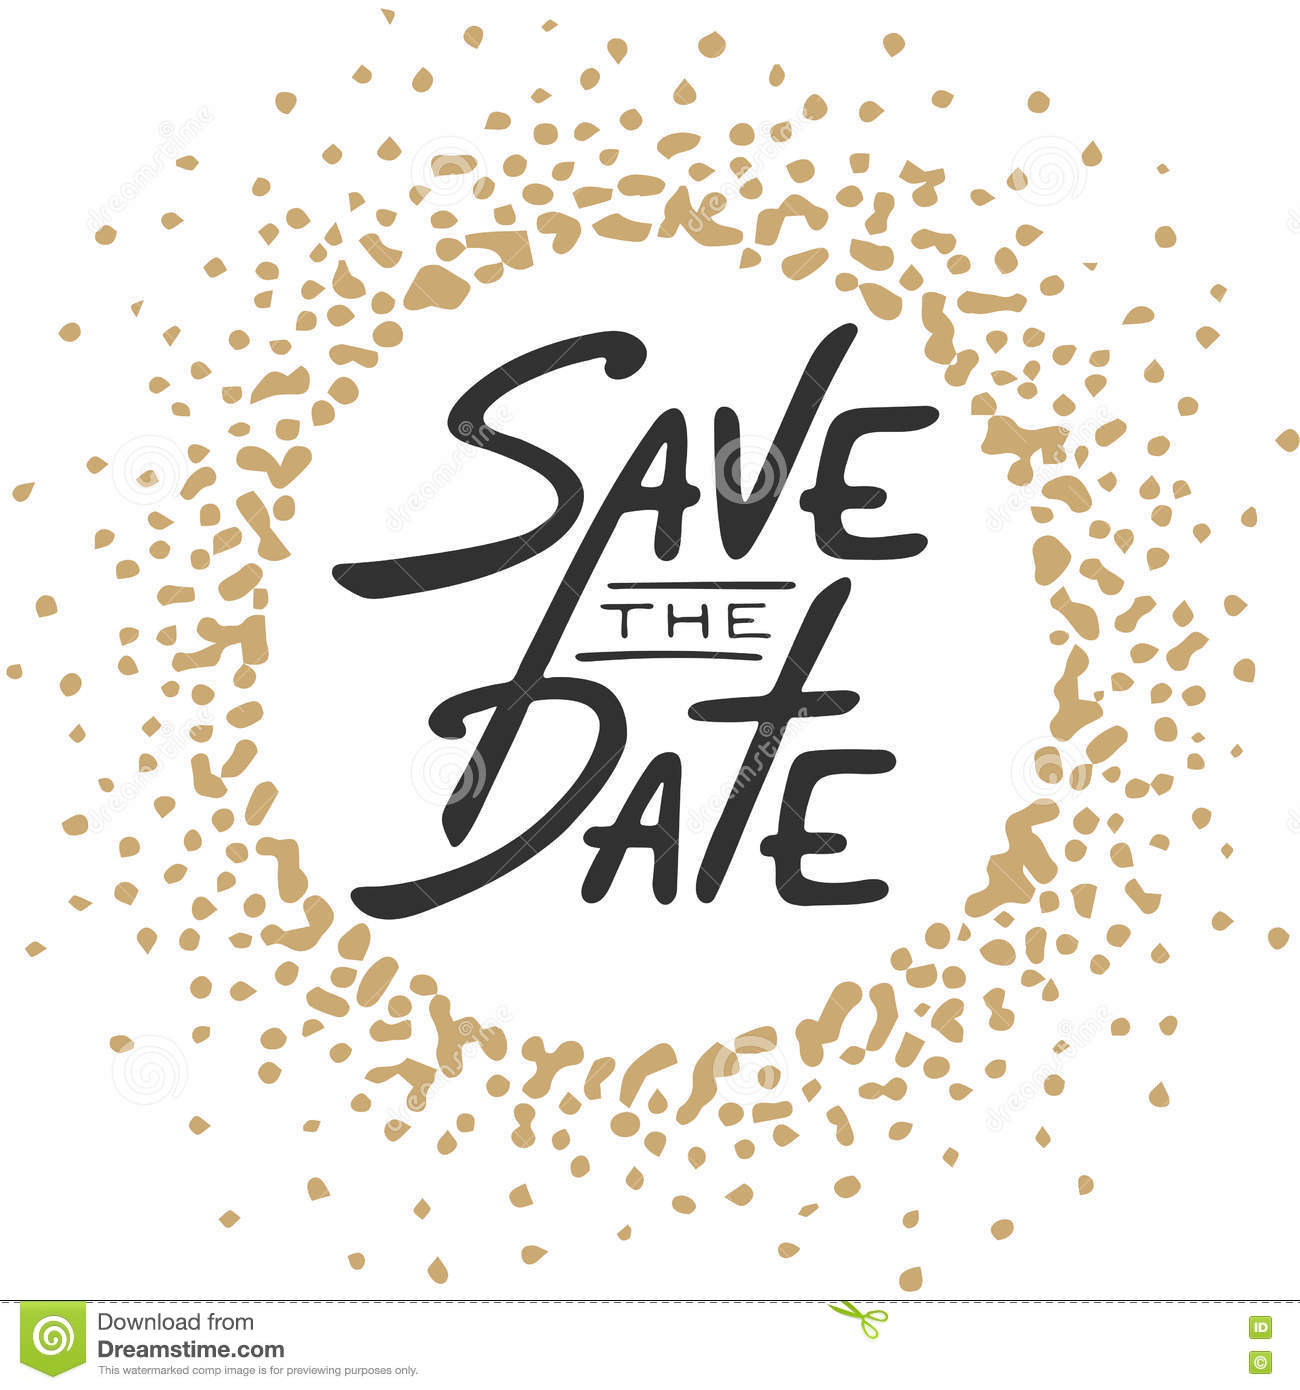 663 Save The Date free clipart.